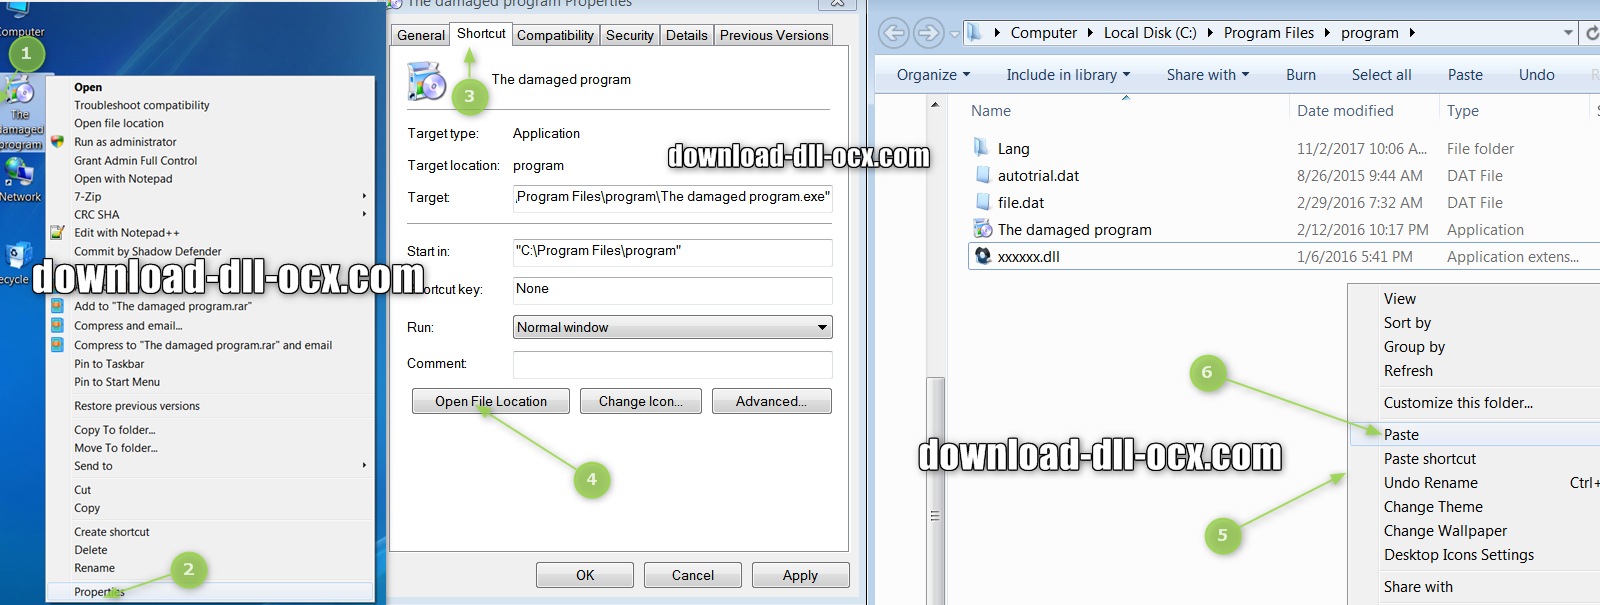 how to install Proxyset.dll file? for fix missing